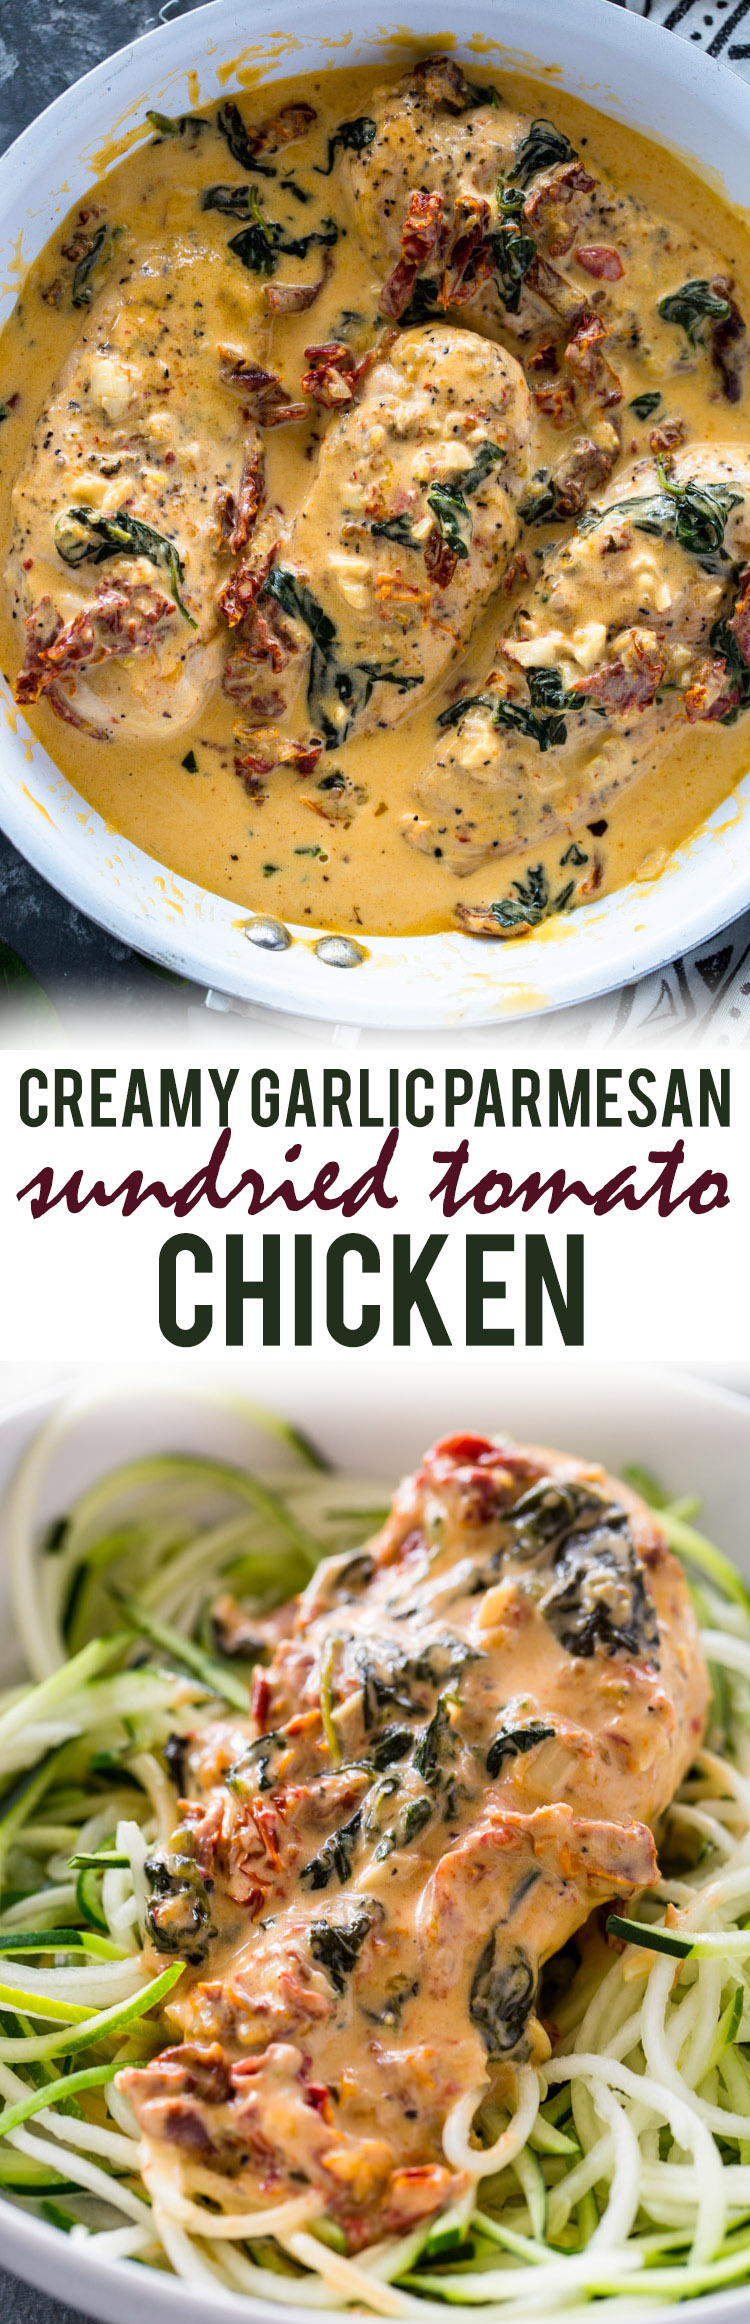 Creamy Garlic Parmesan Sun-dried Tomato Chicken